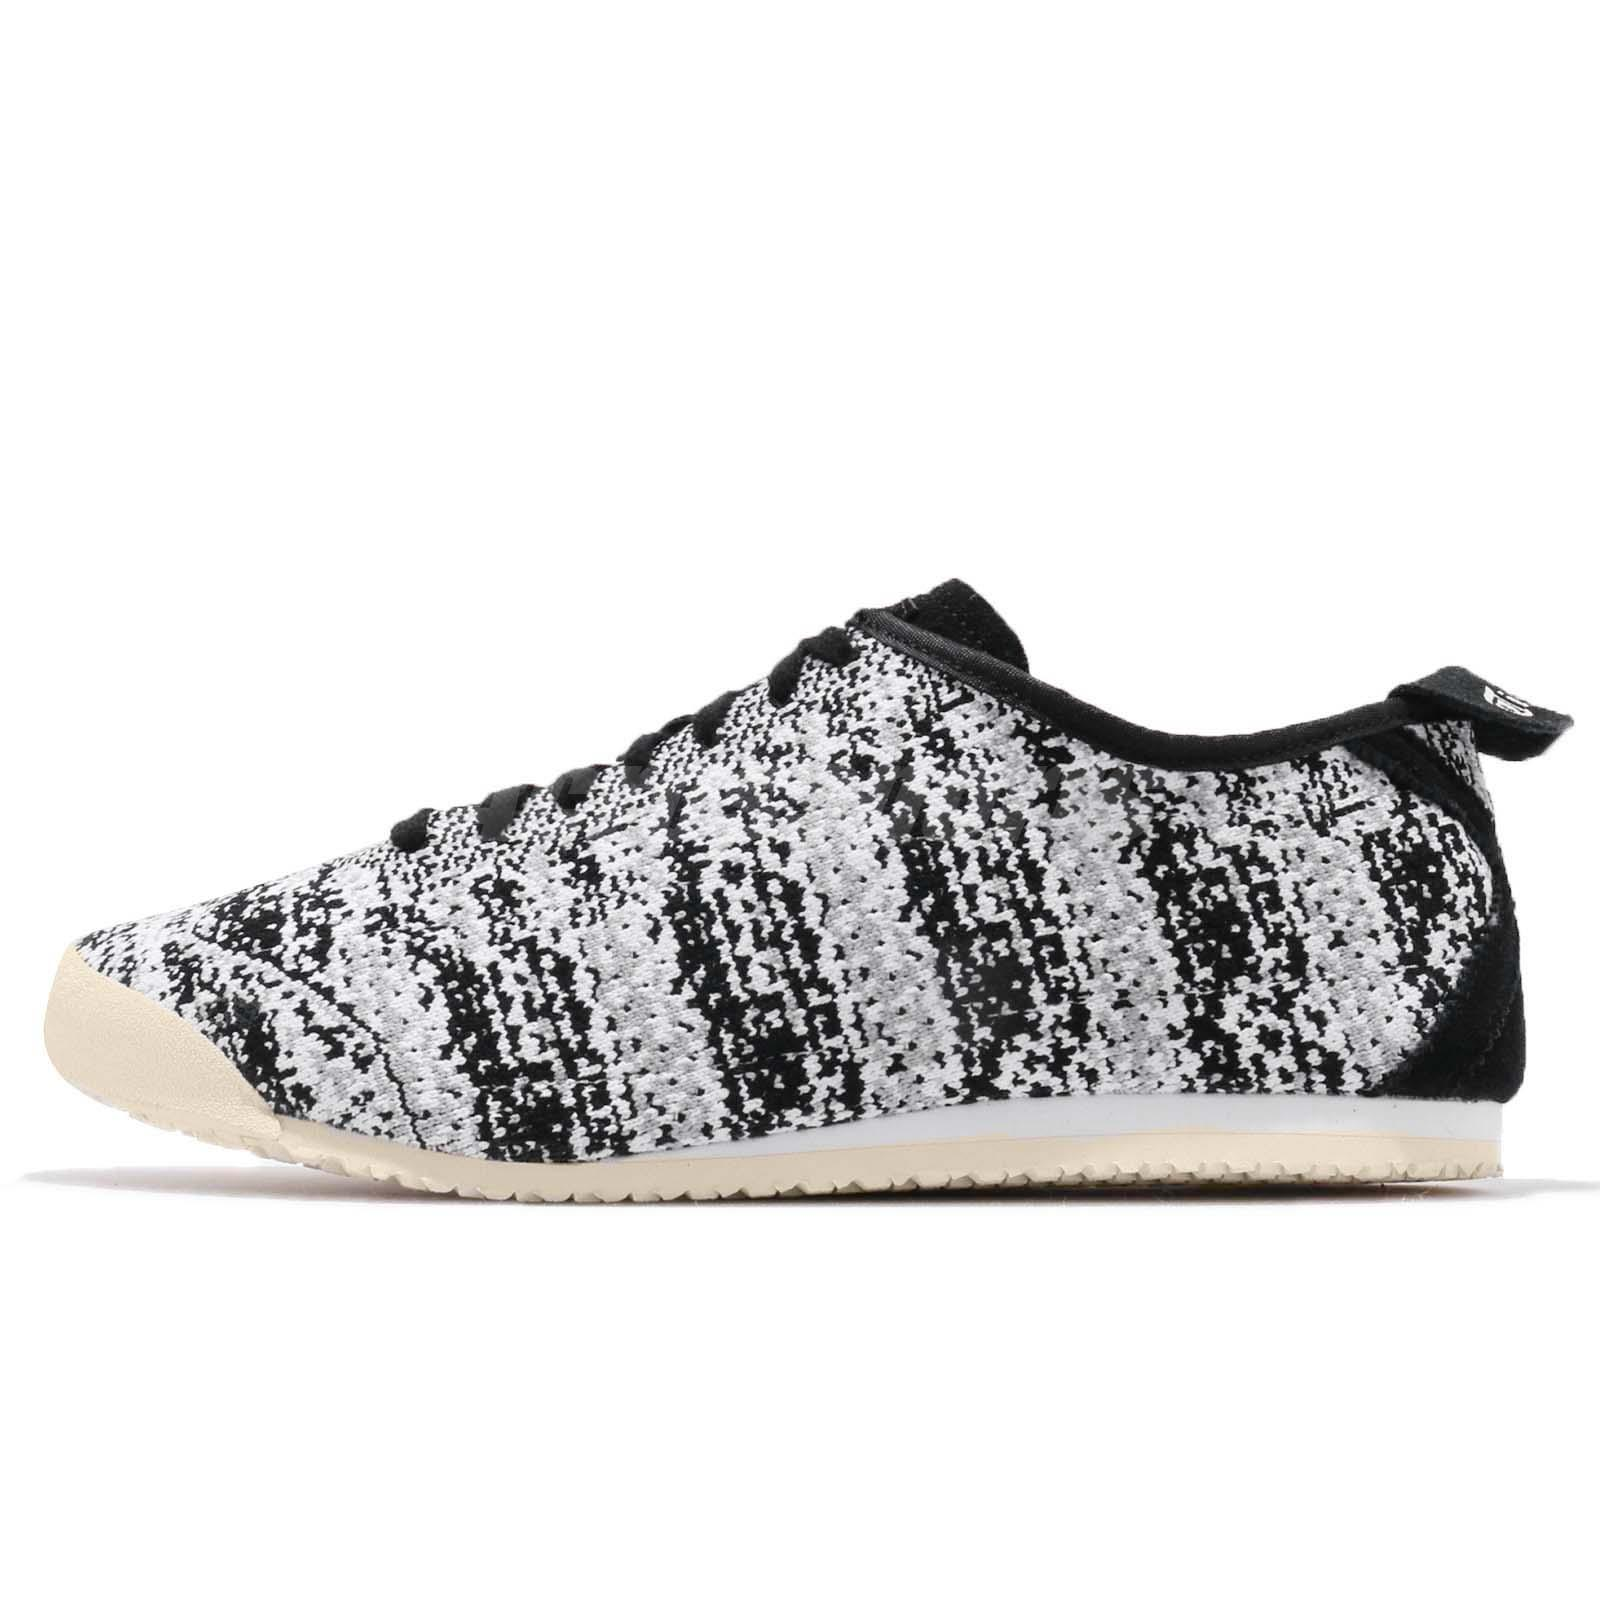 buy popular 42746 e9e5c Details about Asics Onitsuka Tiger Mexico 66 Knit Black Grey Men Running  Shoes D703N-9090